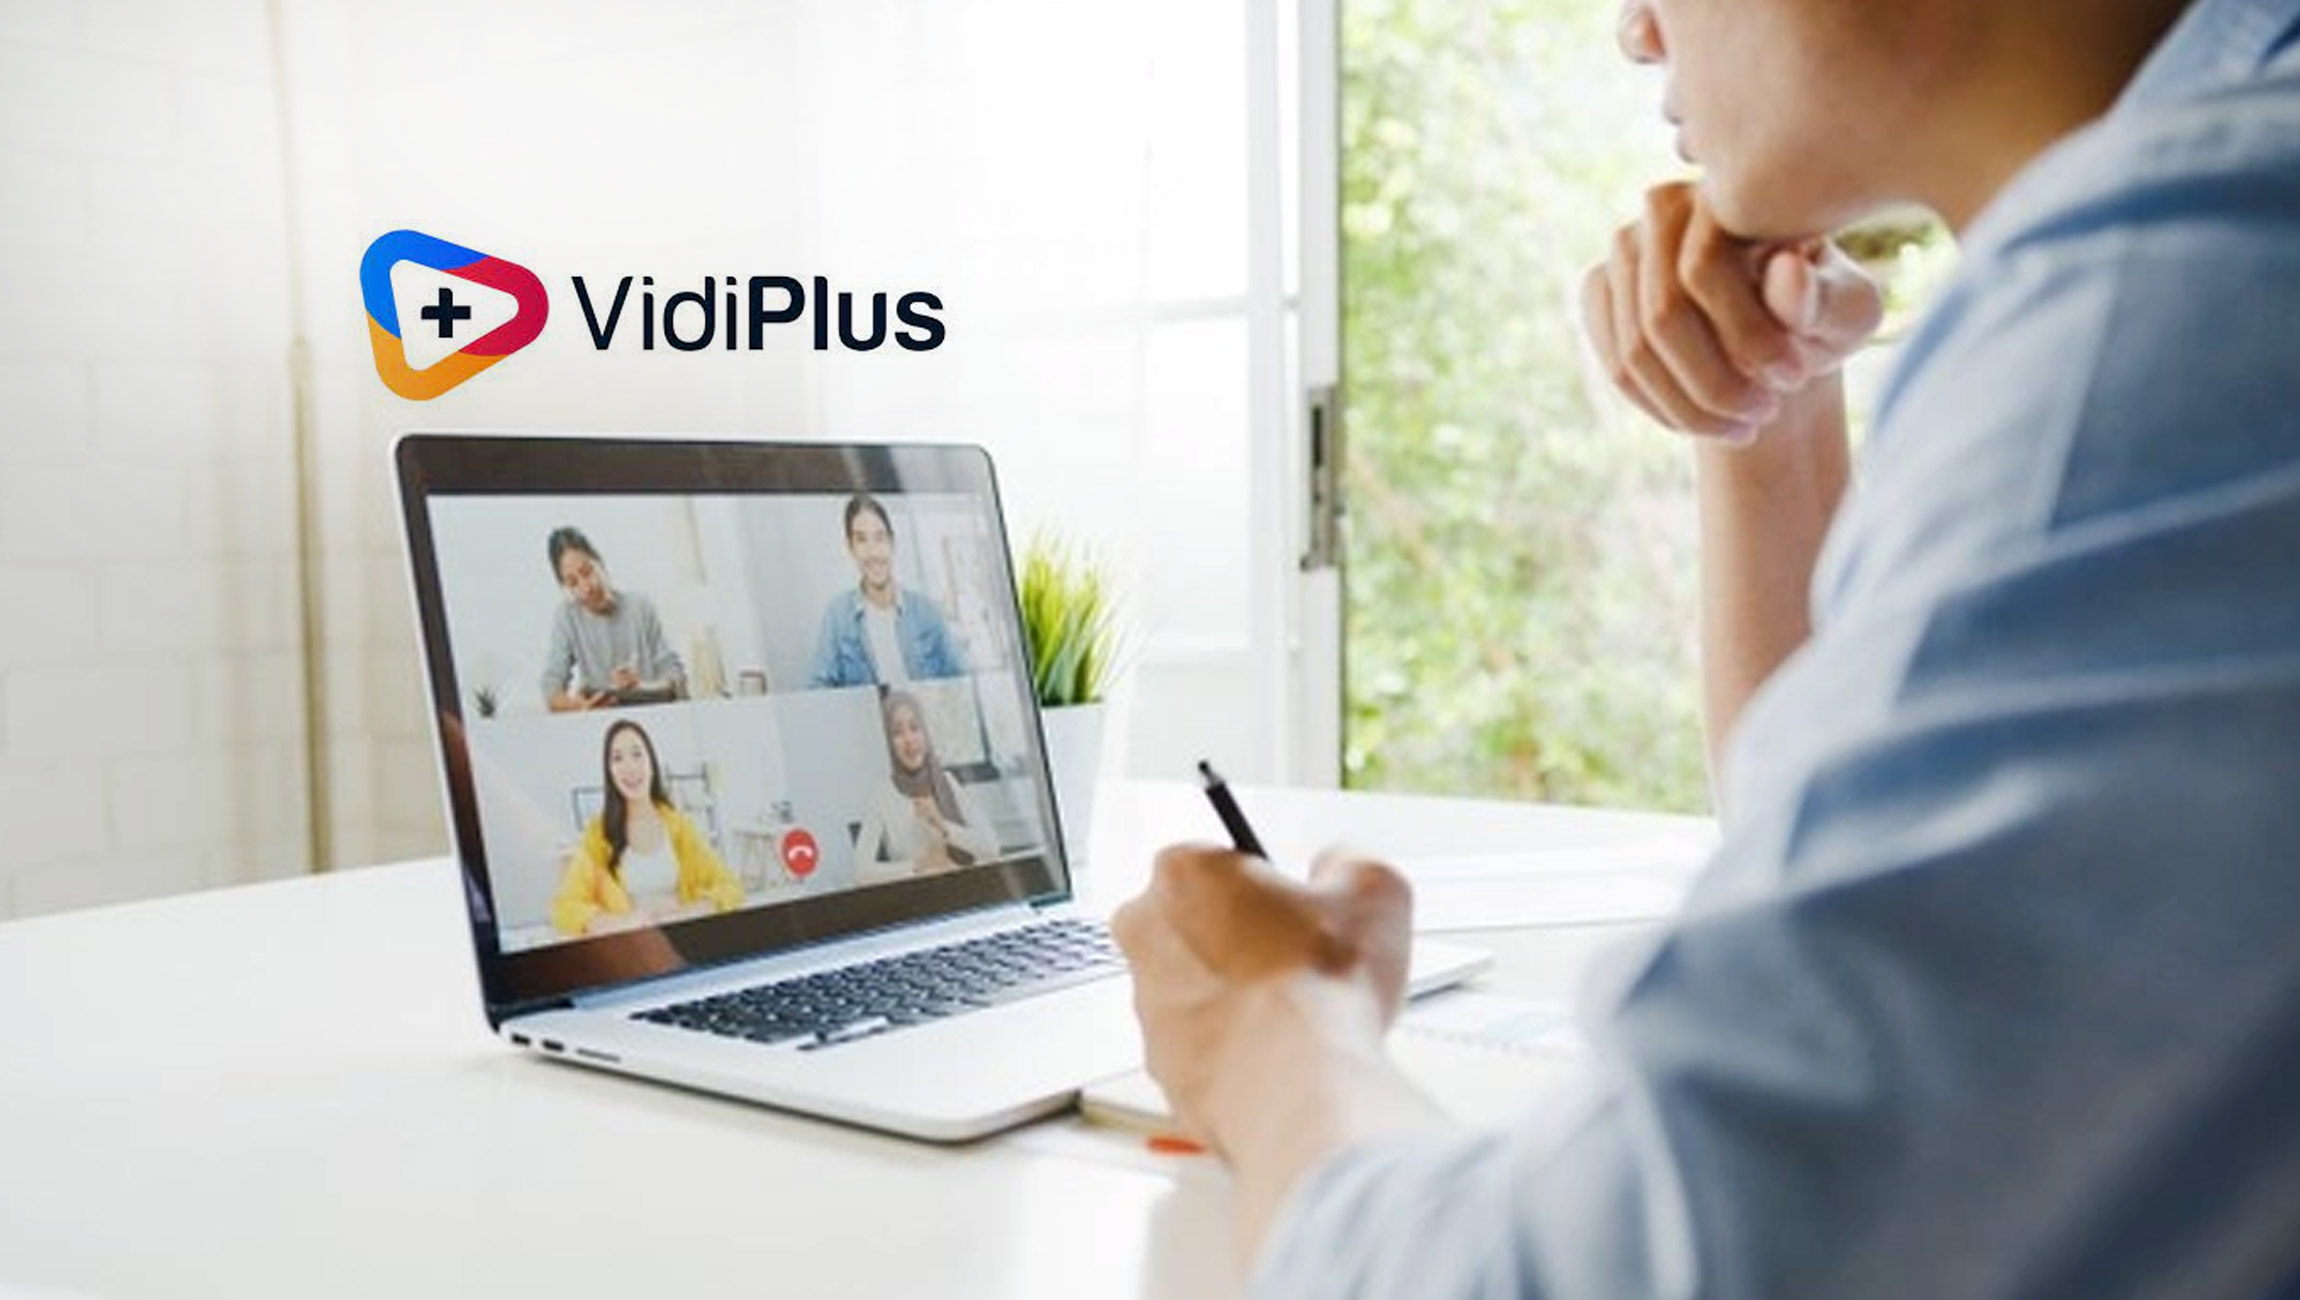 VidiPlus Comes Out of Stealth to Offer Engaging Virtual Meeting Experiences for Sales and Marketing Professionals